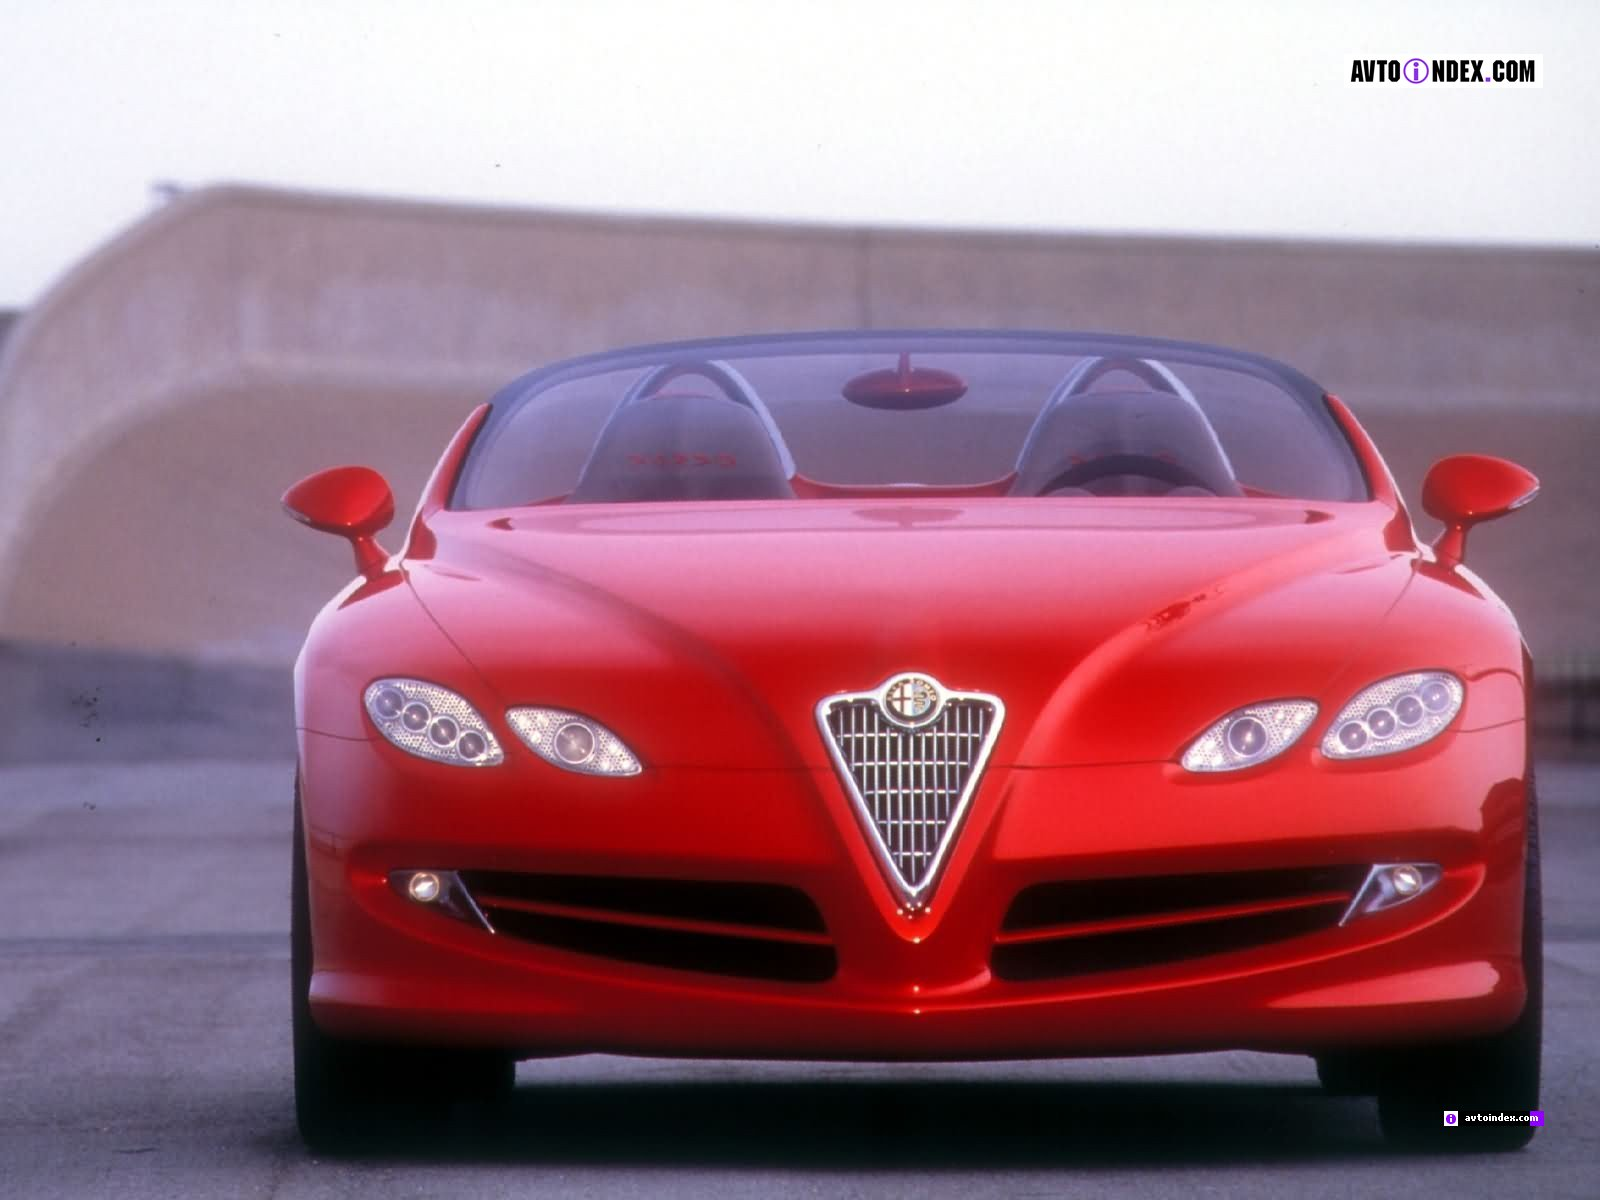 Alfa romeo dardo photo - 1